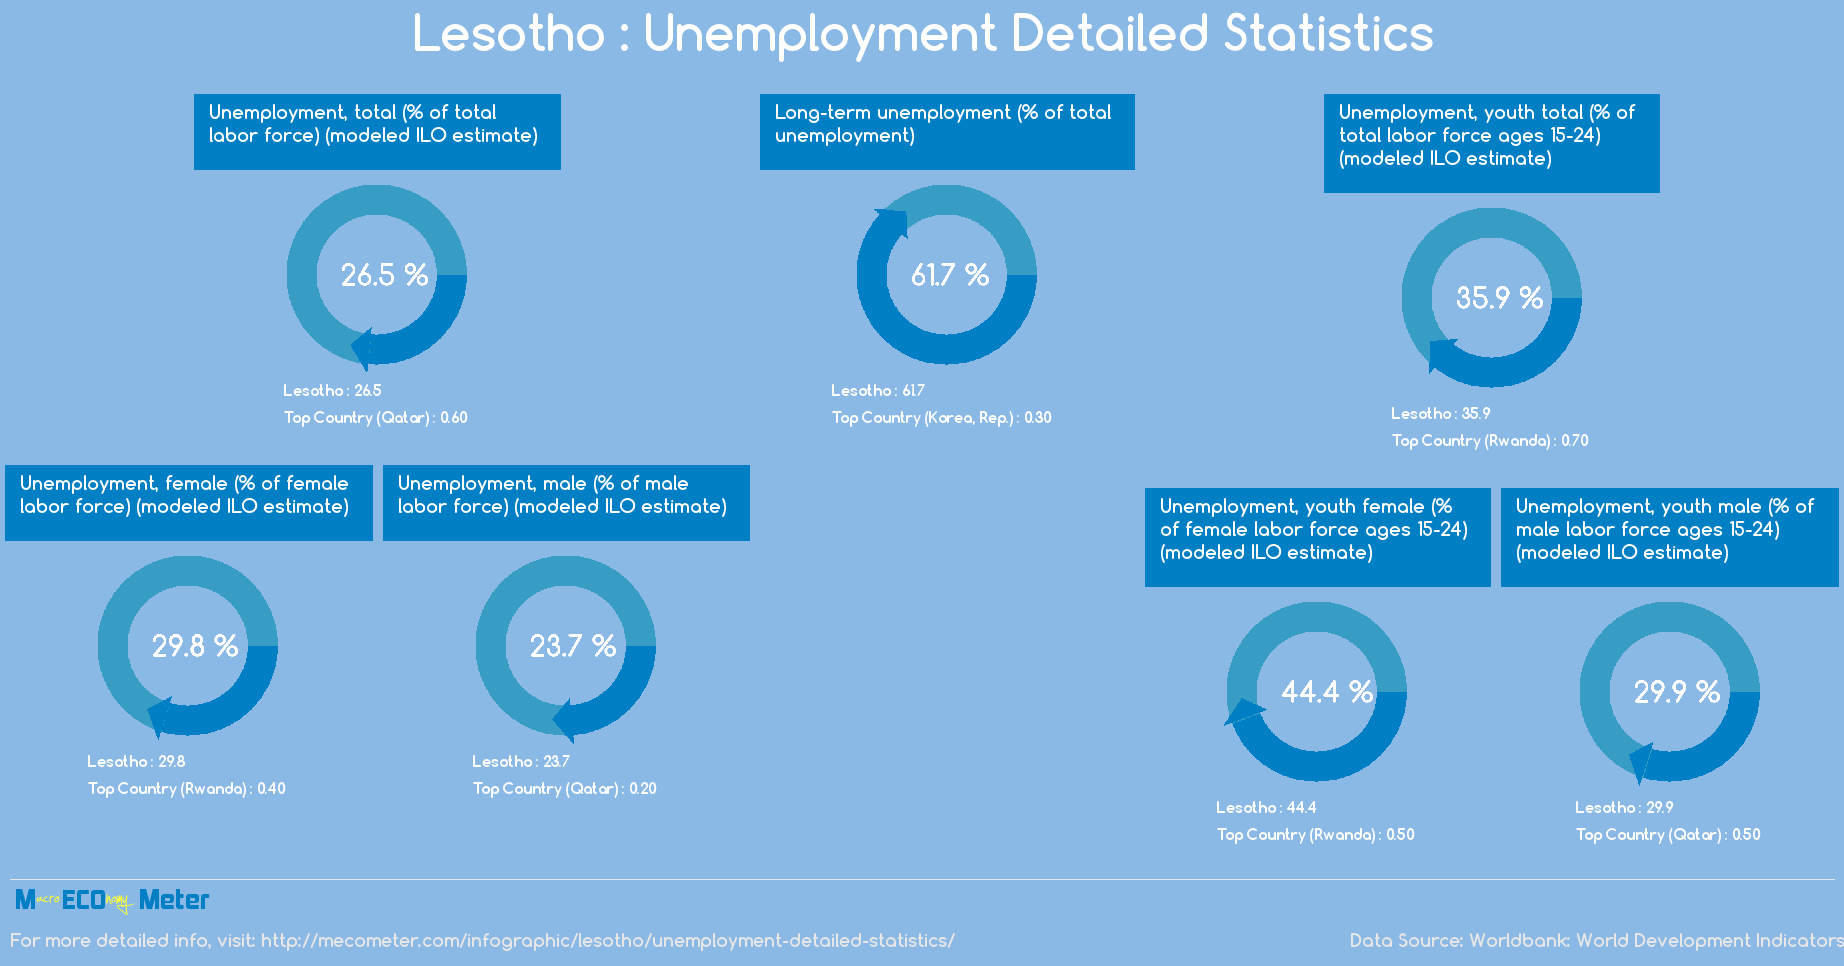 Lesotho : Unemployment Detailed Statistics